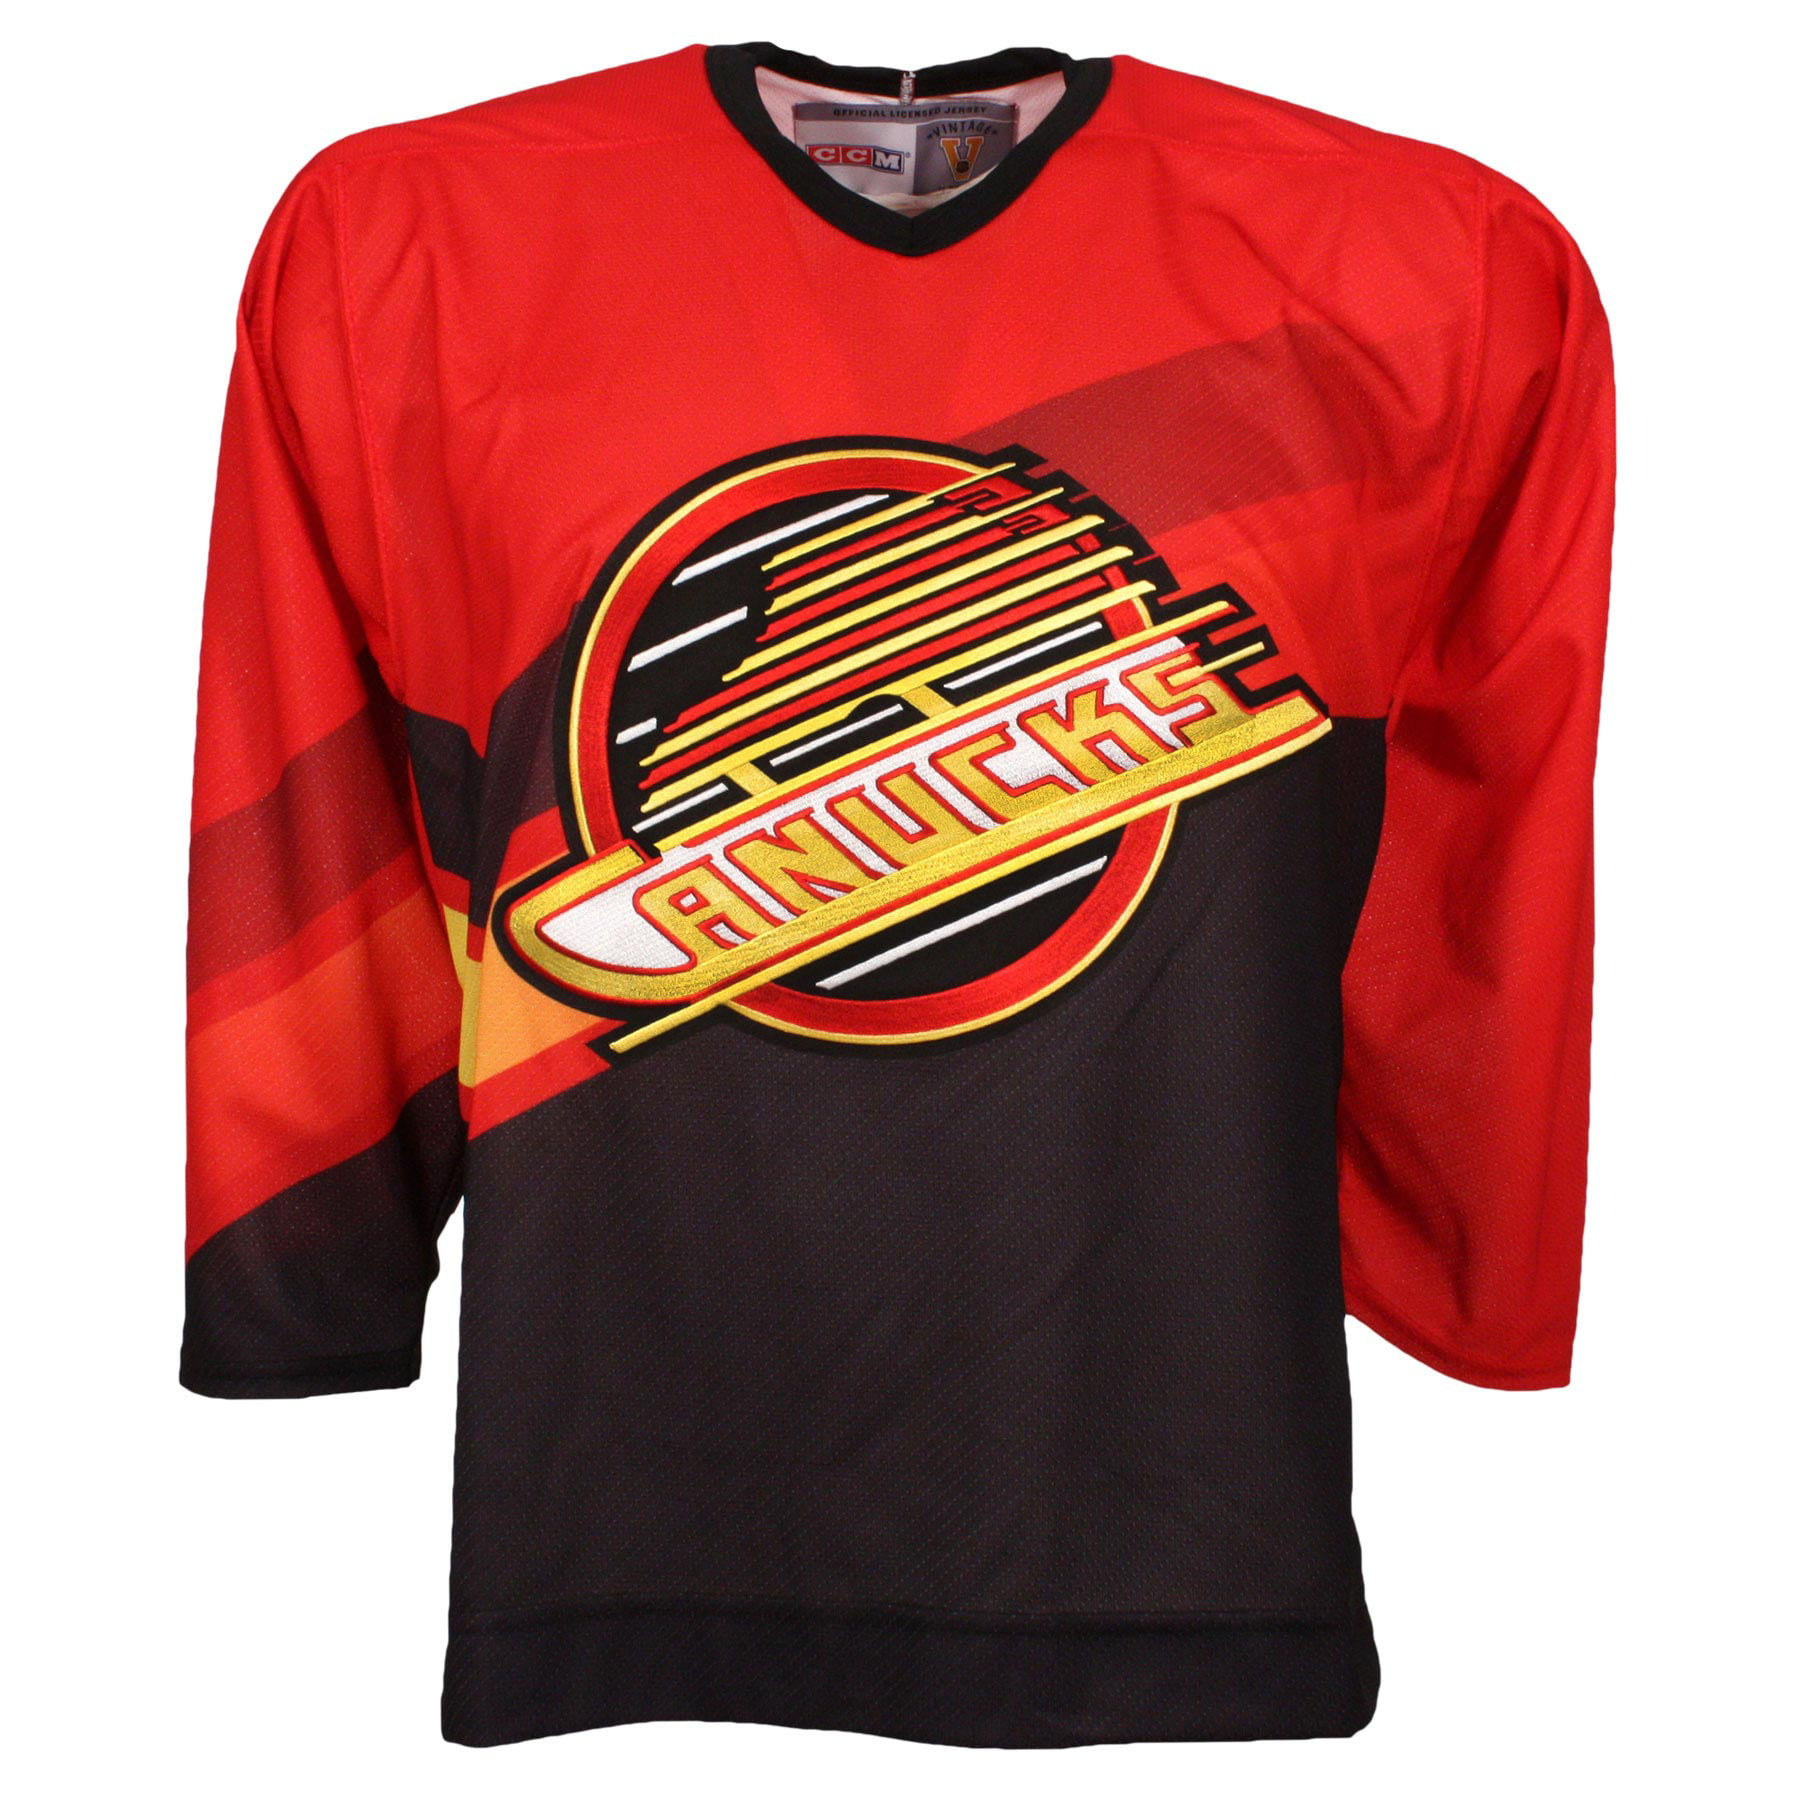 online store a5dcb 6988a Vancouver Canucks Vintage Replica Jersey 1995 (Alternate ...